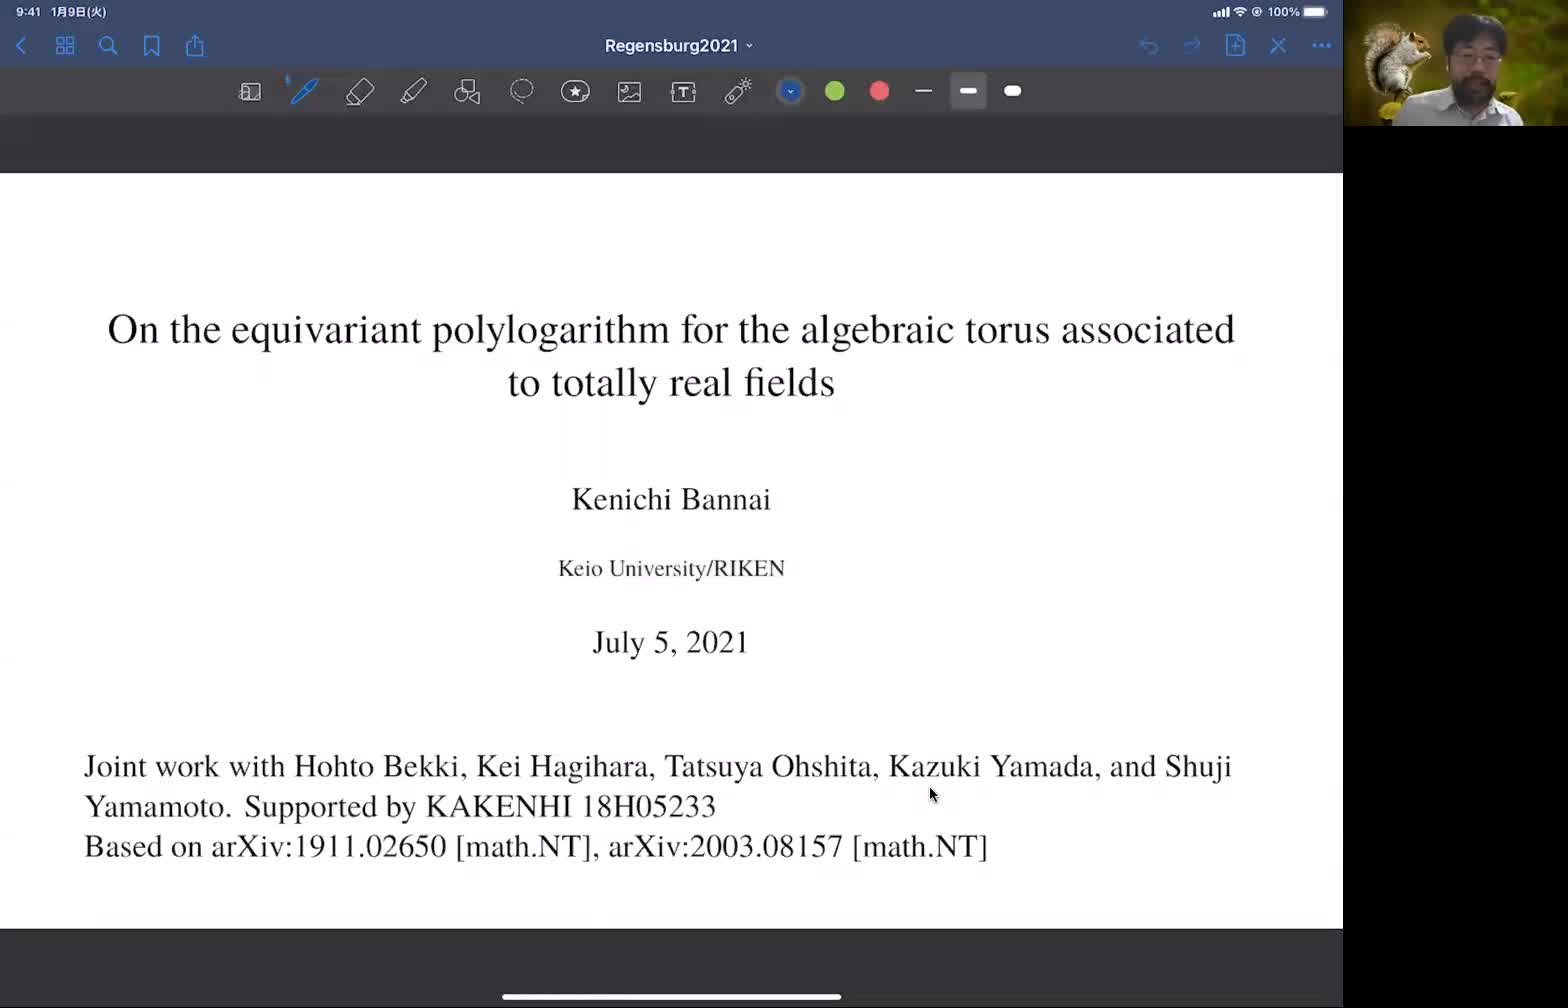 On the equivariant polylogarithm for the algebraic torus associated to totally real fields